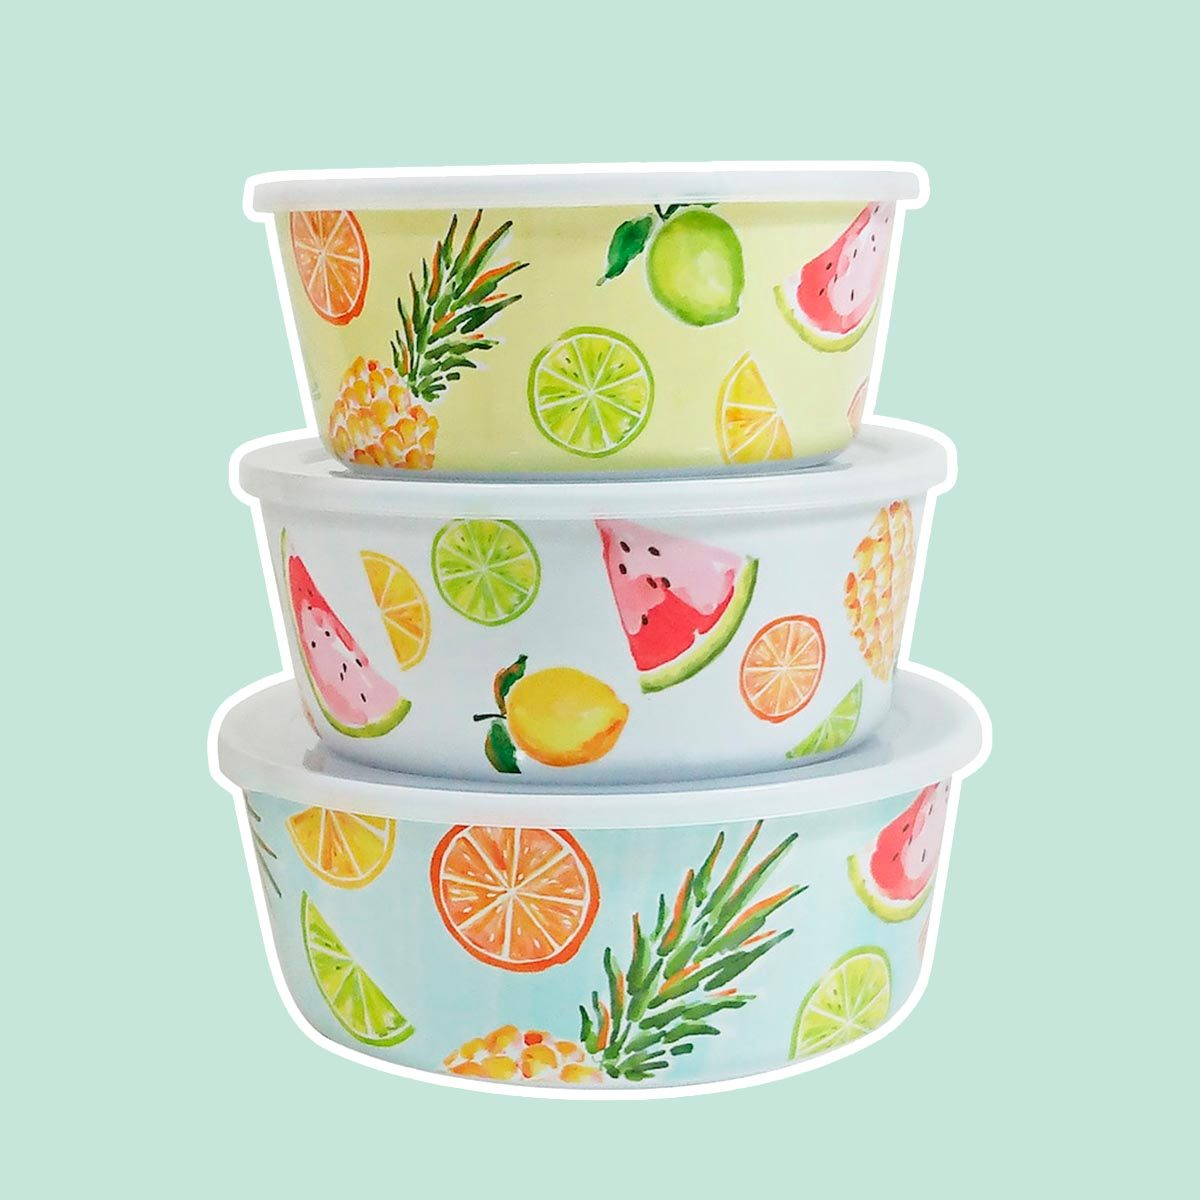 Fruity Snack Containers